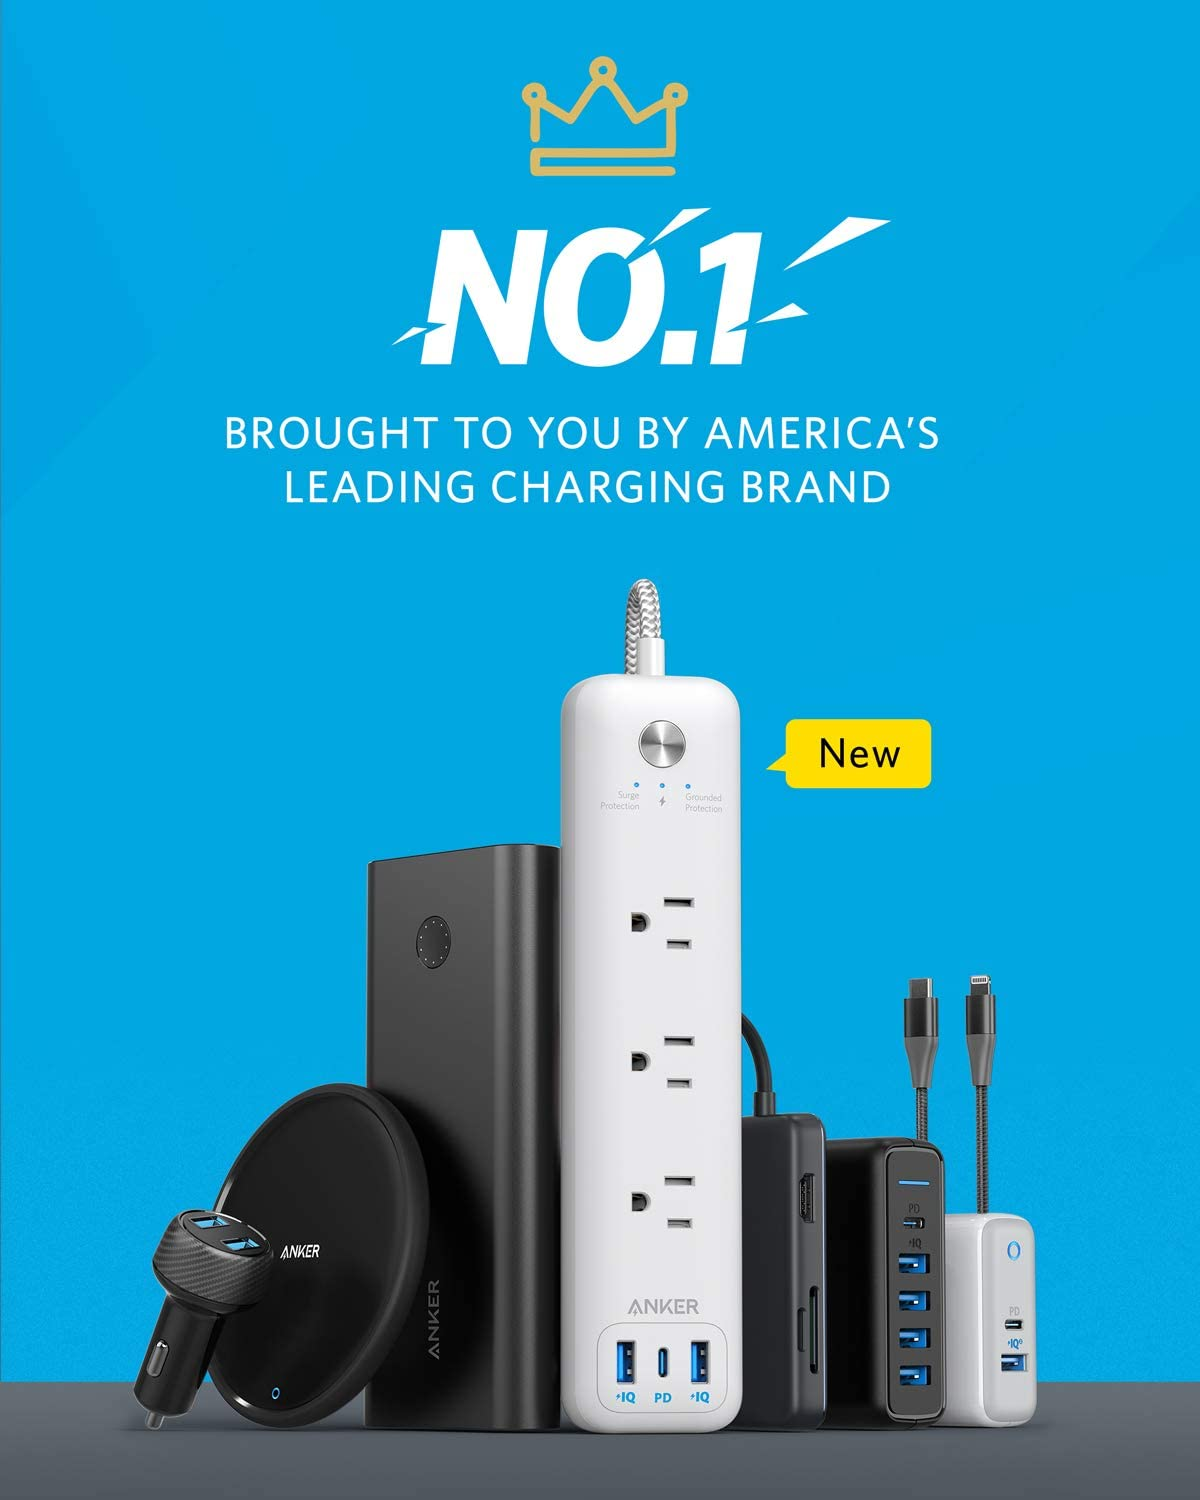 Office Flat Plug Anker 3 Outlets and 30W 3 USB USB C Power Strip with Power Delivery Dorm Room 1 USB C, 2 USB A for Home Surge Protector PowerPort Strip PD 3 with 6ft Long Extension Cord